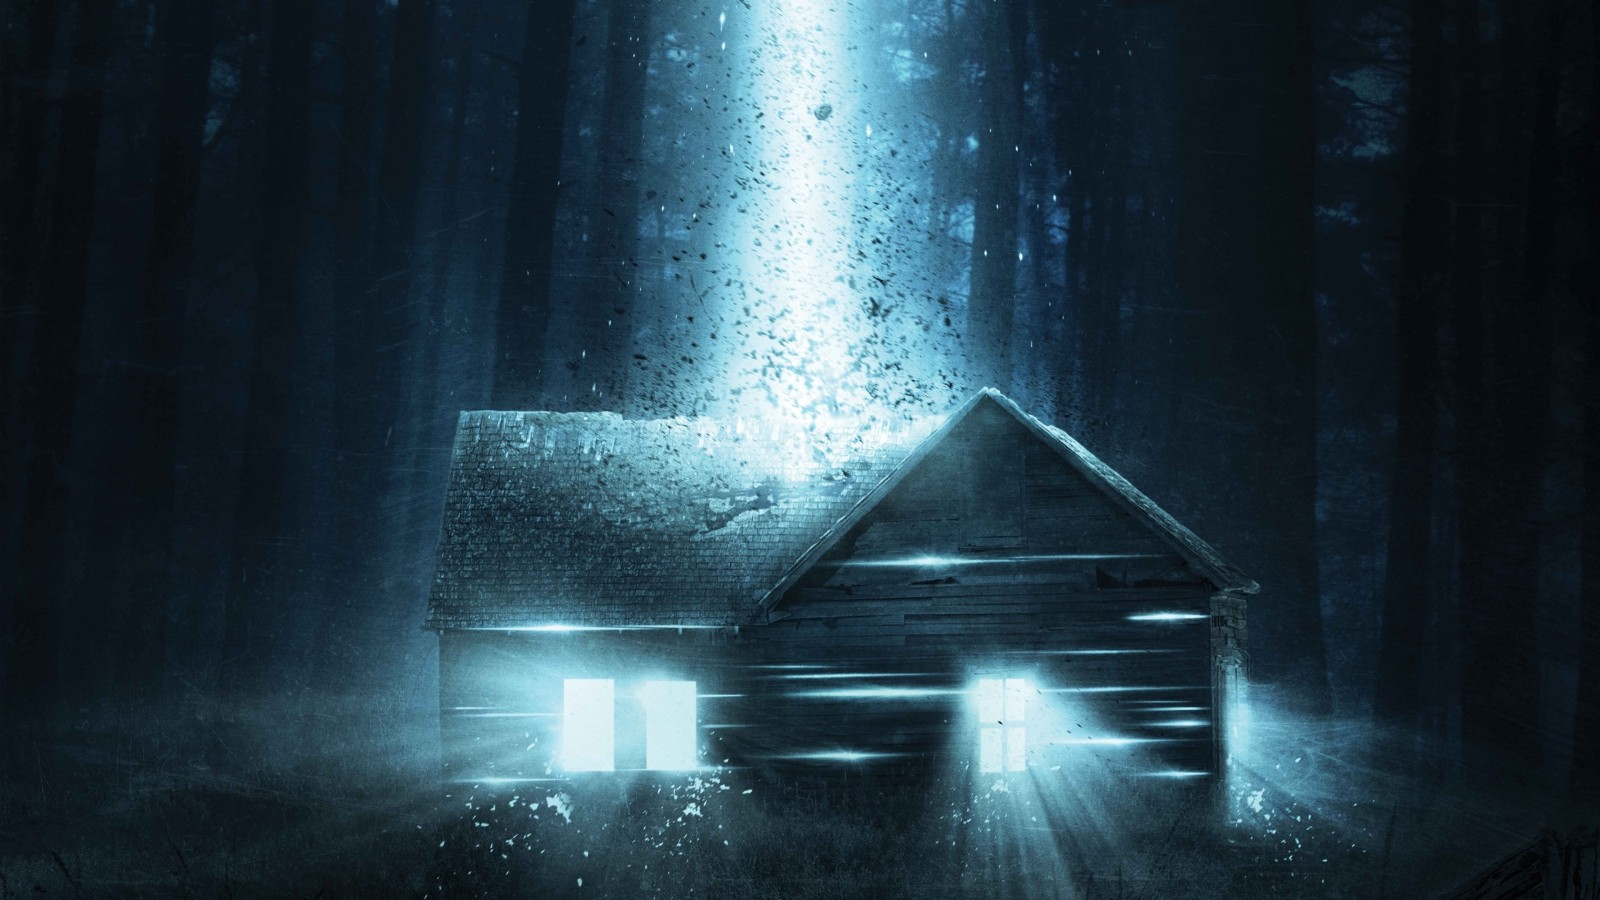 Cute Wallpaper Widescreen Extraterrestrial Home Wallpapers Hd Wallpapers Id 14312